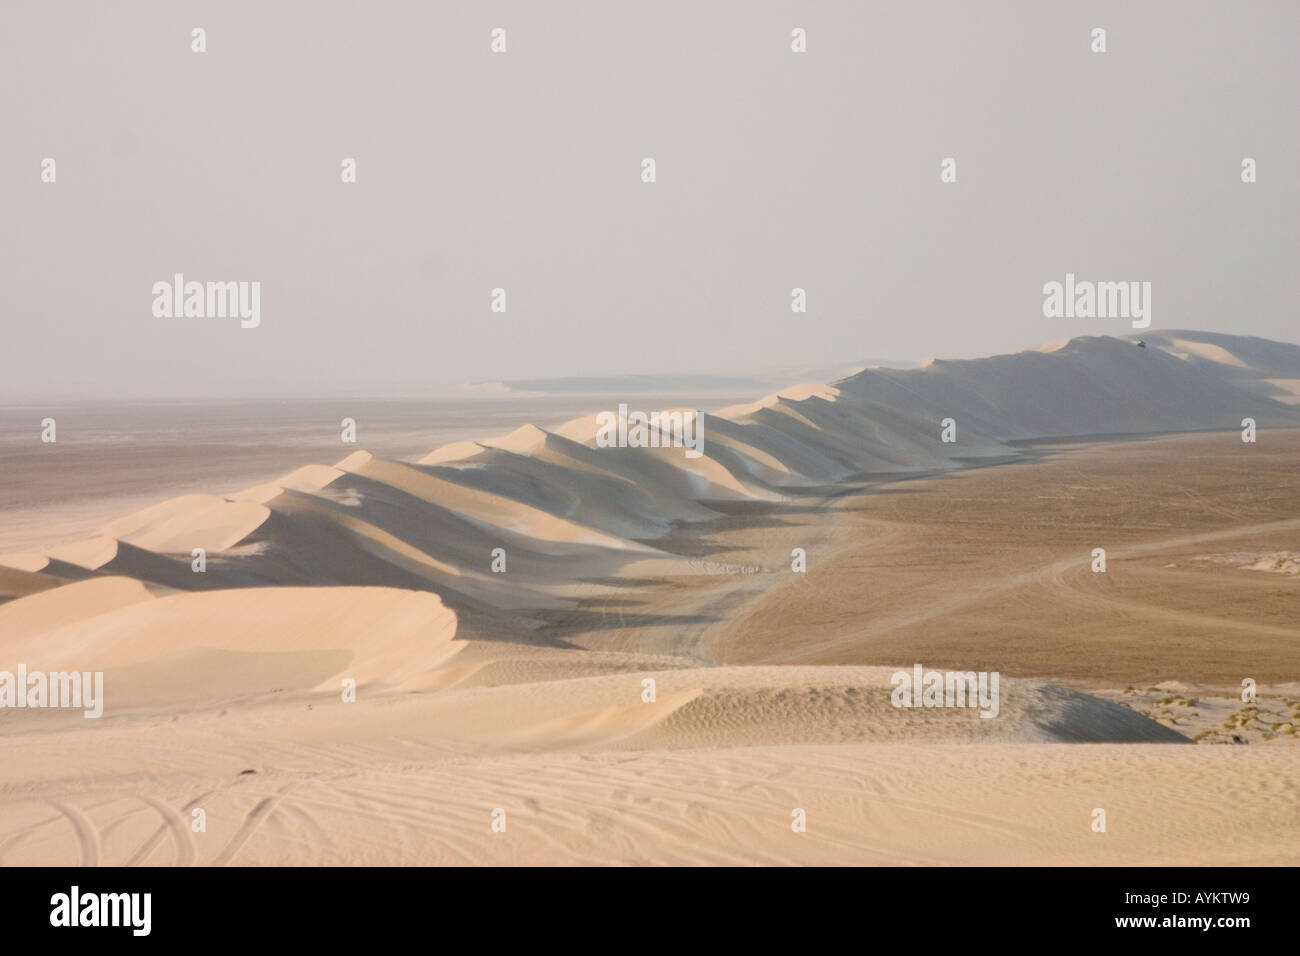 A line of sand dunes in qatar - Stock Image